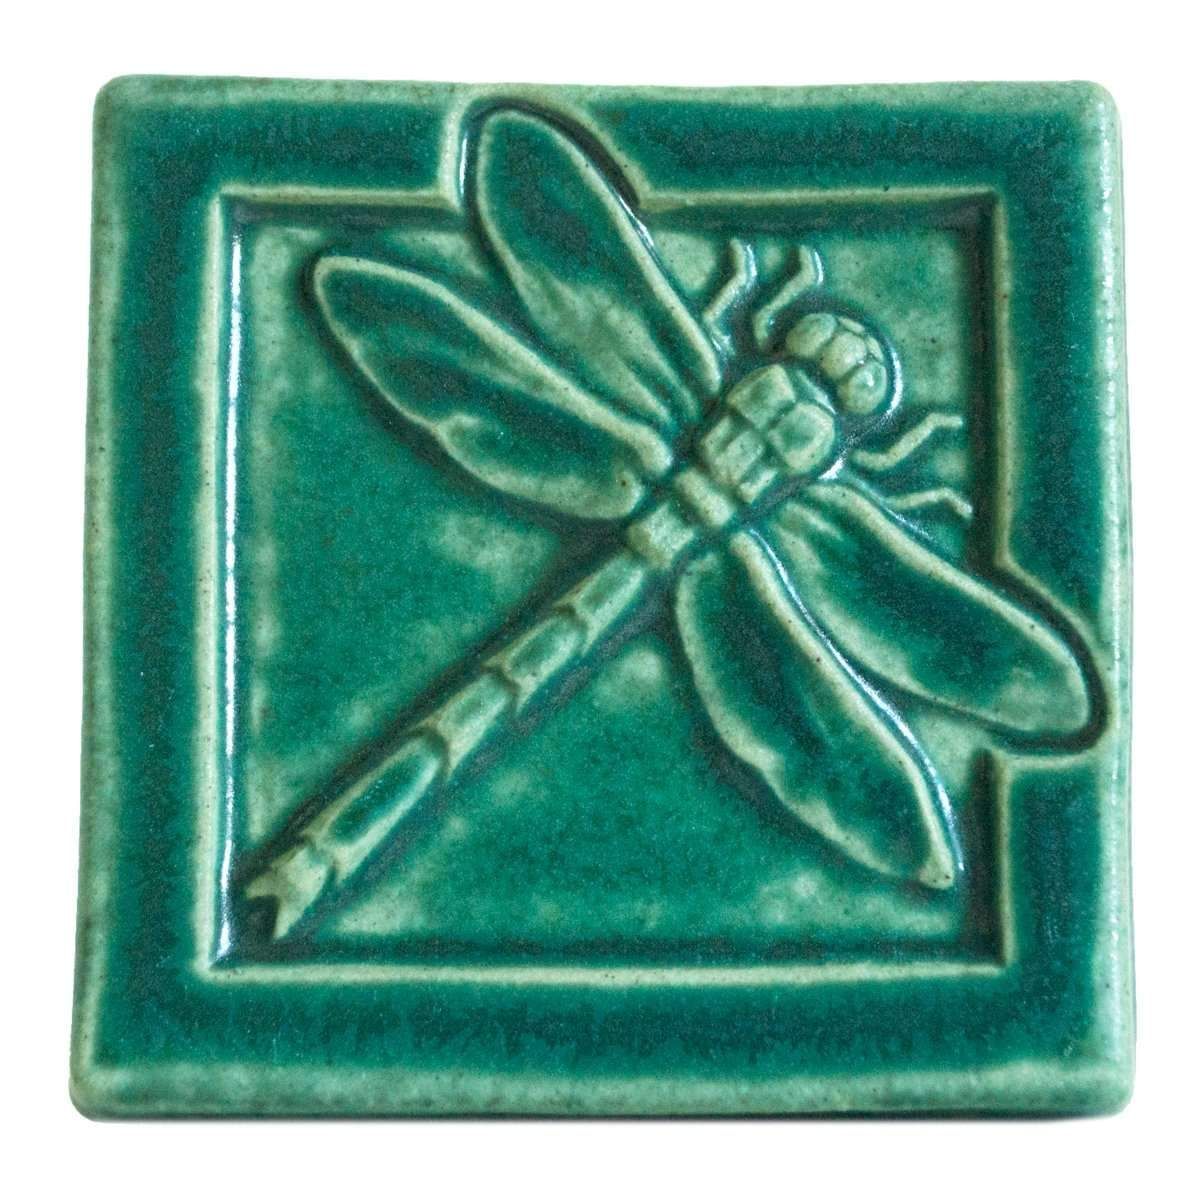 4x4 Dragonfly - Pewabic Green